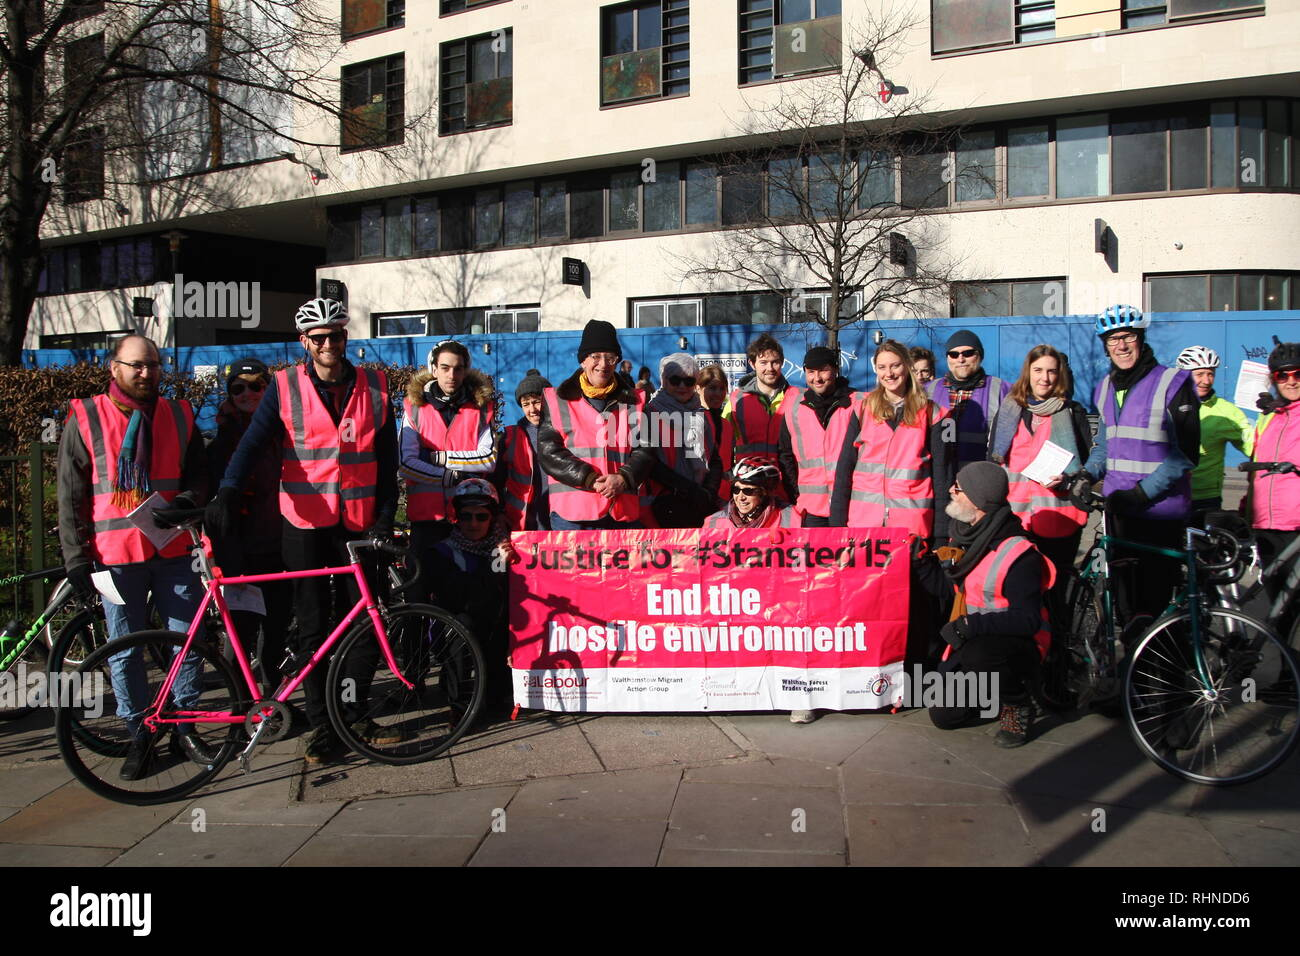 London, UK, February 3rd 2019. Cyclists gather in central London to take part in a ten mile ride in support of the 'Stansted 15'. Before setting off some of the cyclists gather with a banner reading: 'Justice to the Stansted 15. End the Hostile Environment'. The 'Stanstead 15' are a group of protesters who surrounded an aircraft at Stansted airport in 2017 to prevent it being used to carry out a deportation. The 15 have been found guilty of terrorism related charges and will be sentenced in Chelmsford on February the 6th. Roland Ravenhill/Alamy Live News - Stock Image